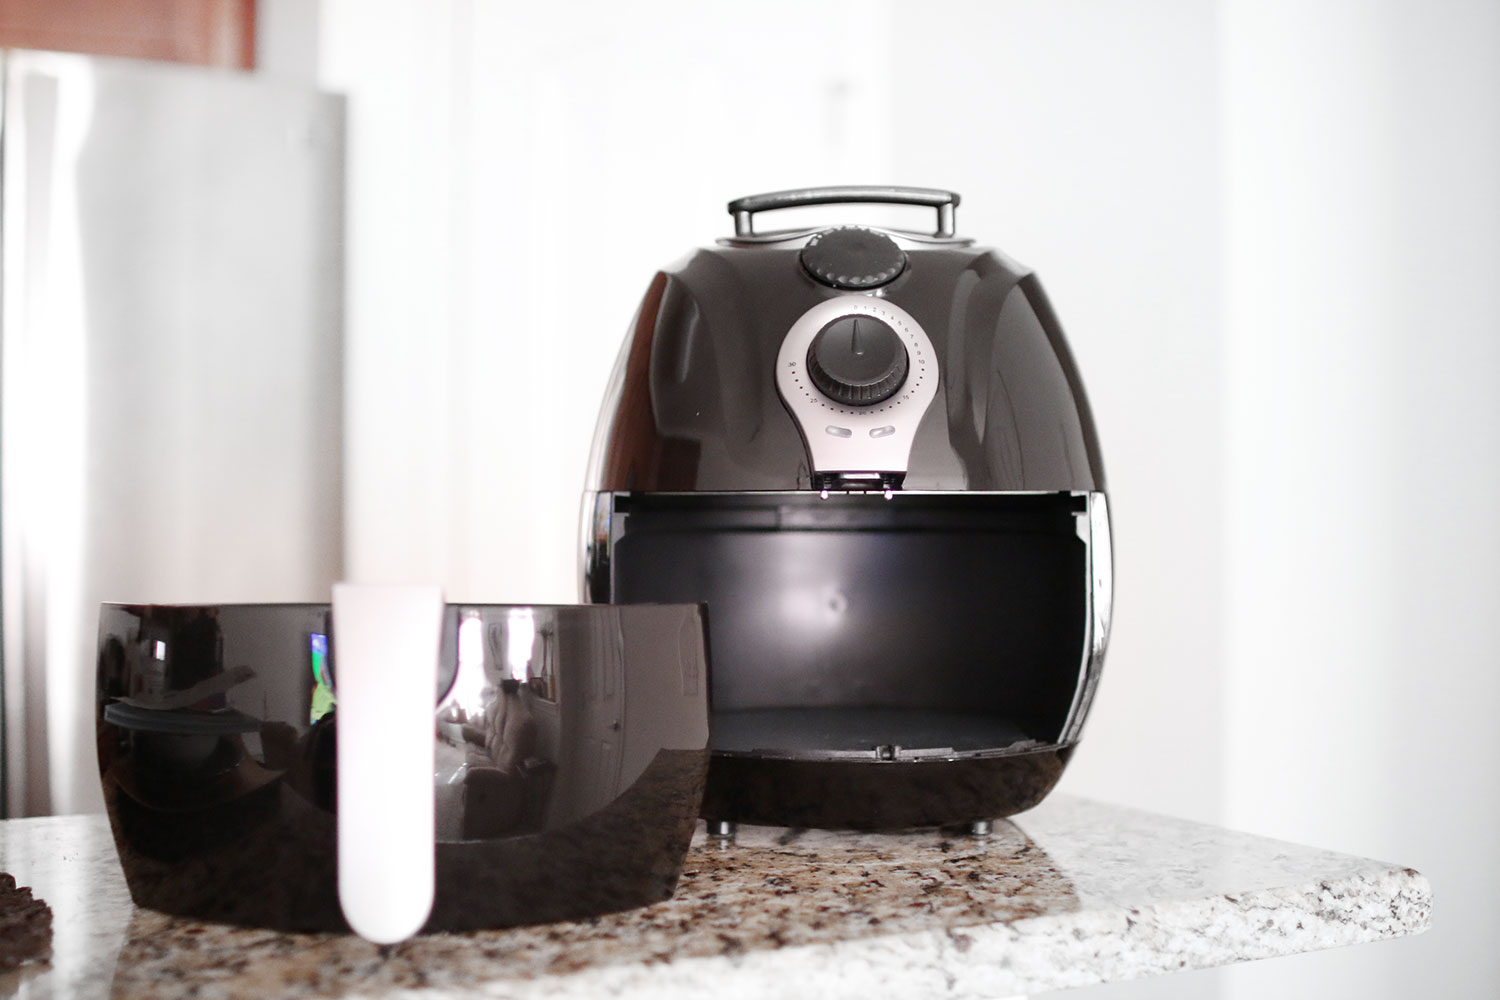 Avalon Bay AB-Airfryer100B